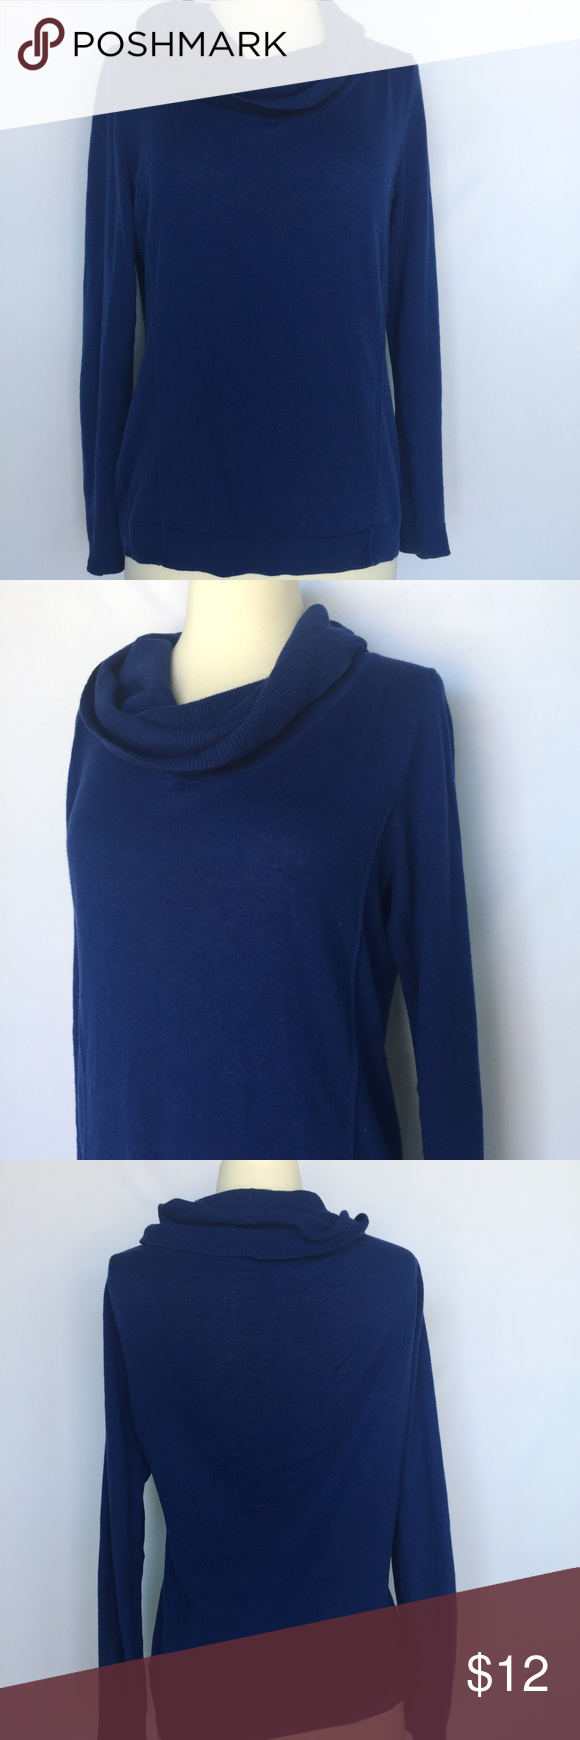 """The Limited royal blue cowl neck sweater Gently used The Limited royal blue cowl neck sweater size small. No stains or holes. Length approximately 24"""", sleeve length 22"""", material cotton and viscose. The Limited Sweaters Cowl & Turtlenecks"""